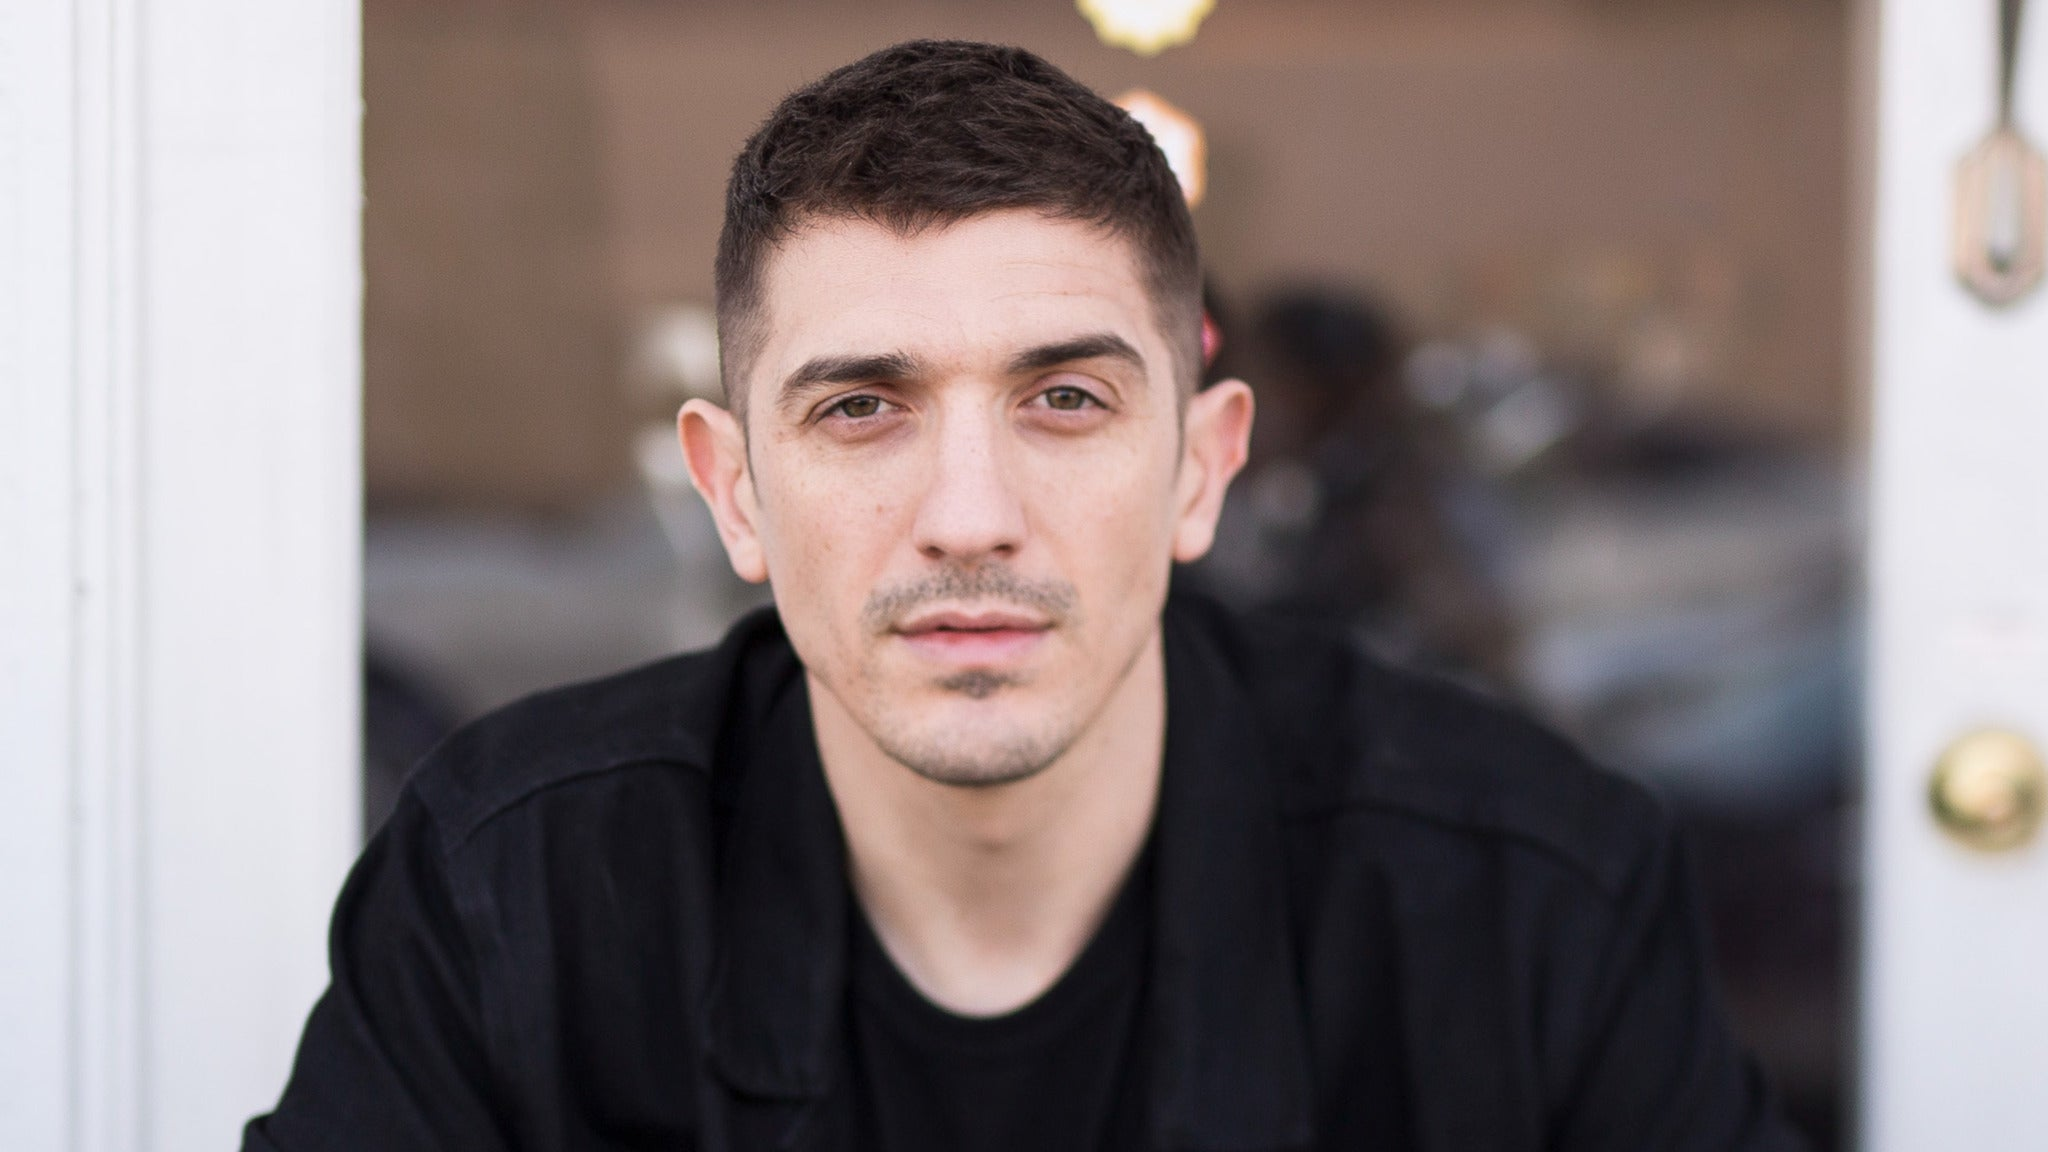 Andrew Schulz - The Matador Tour at Center Stage Theater - Atlanta, GA 30309